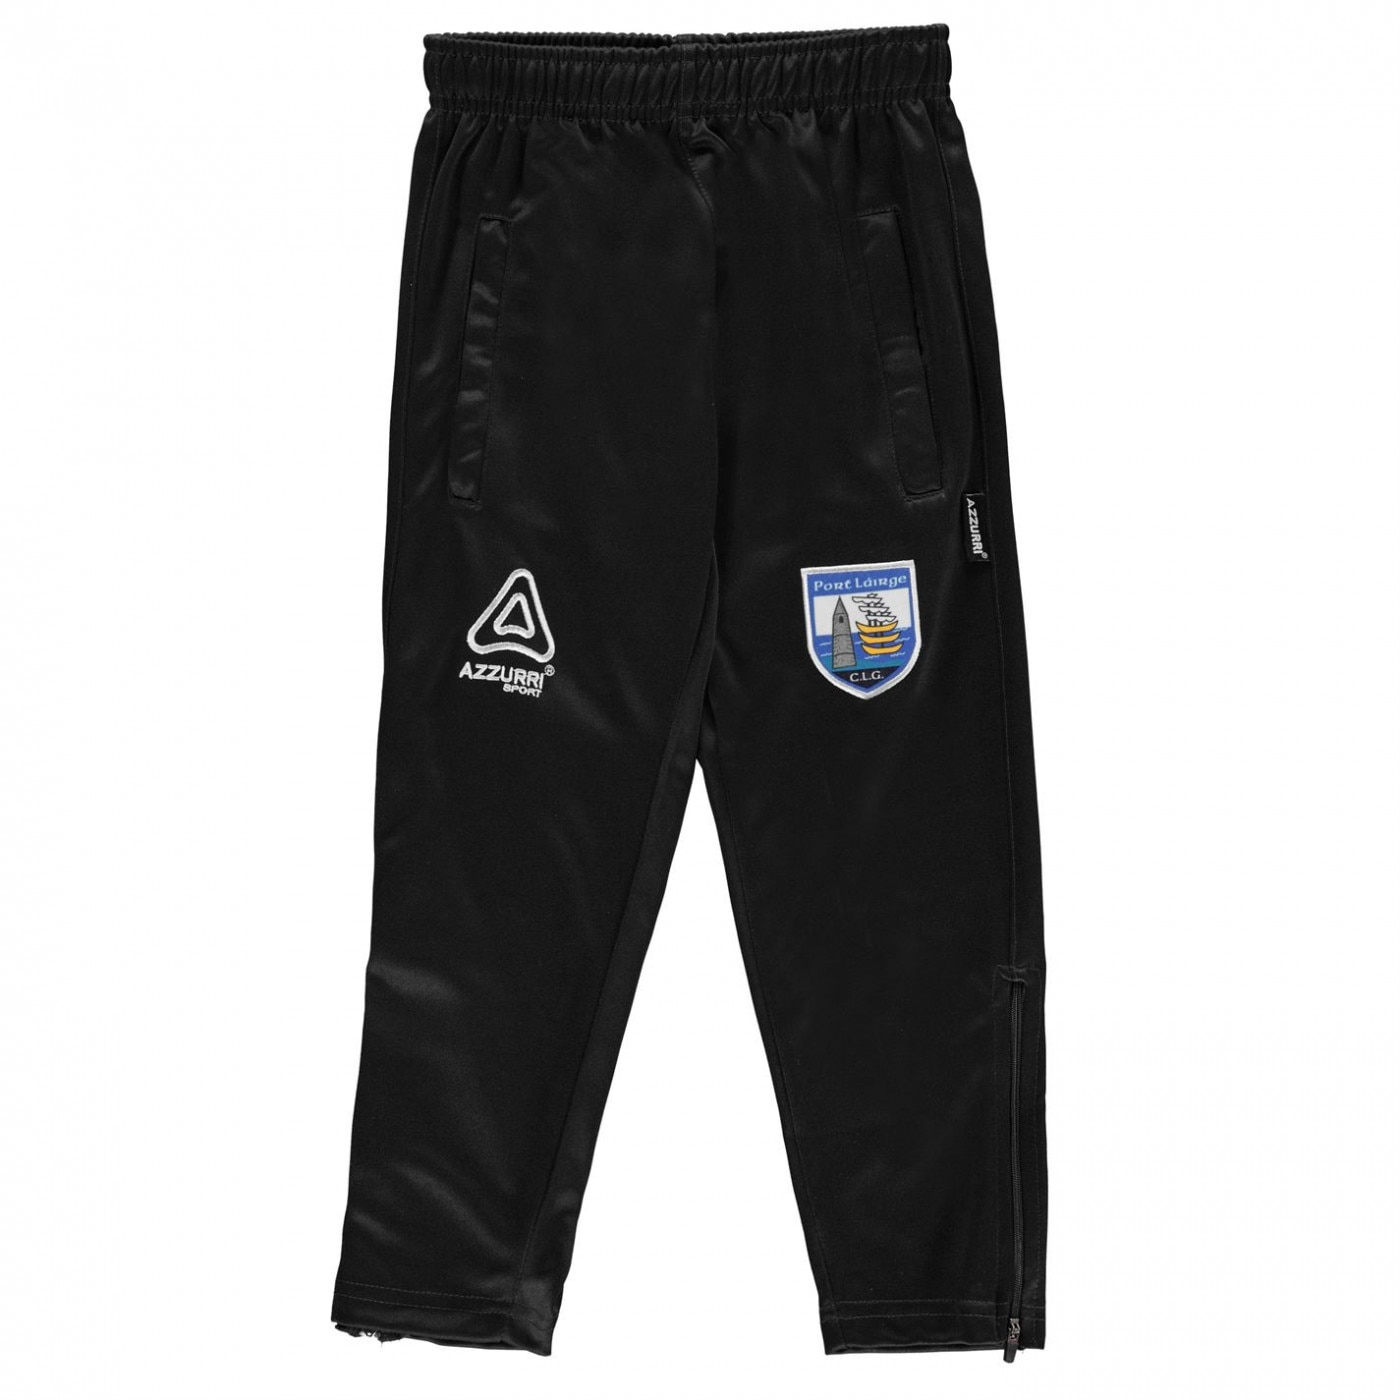 Azzurri Kinvara Jogging Pants Junior Boys